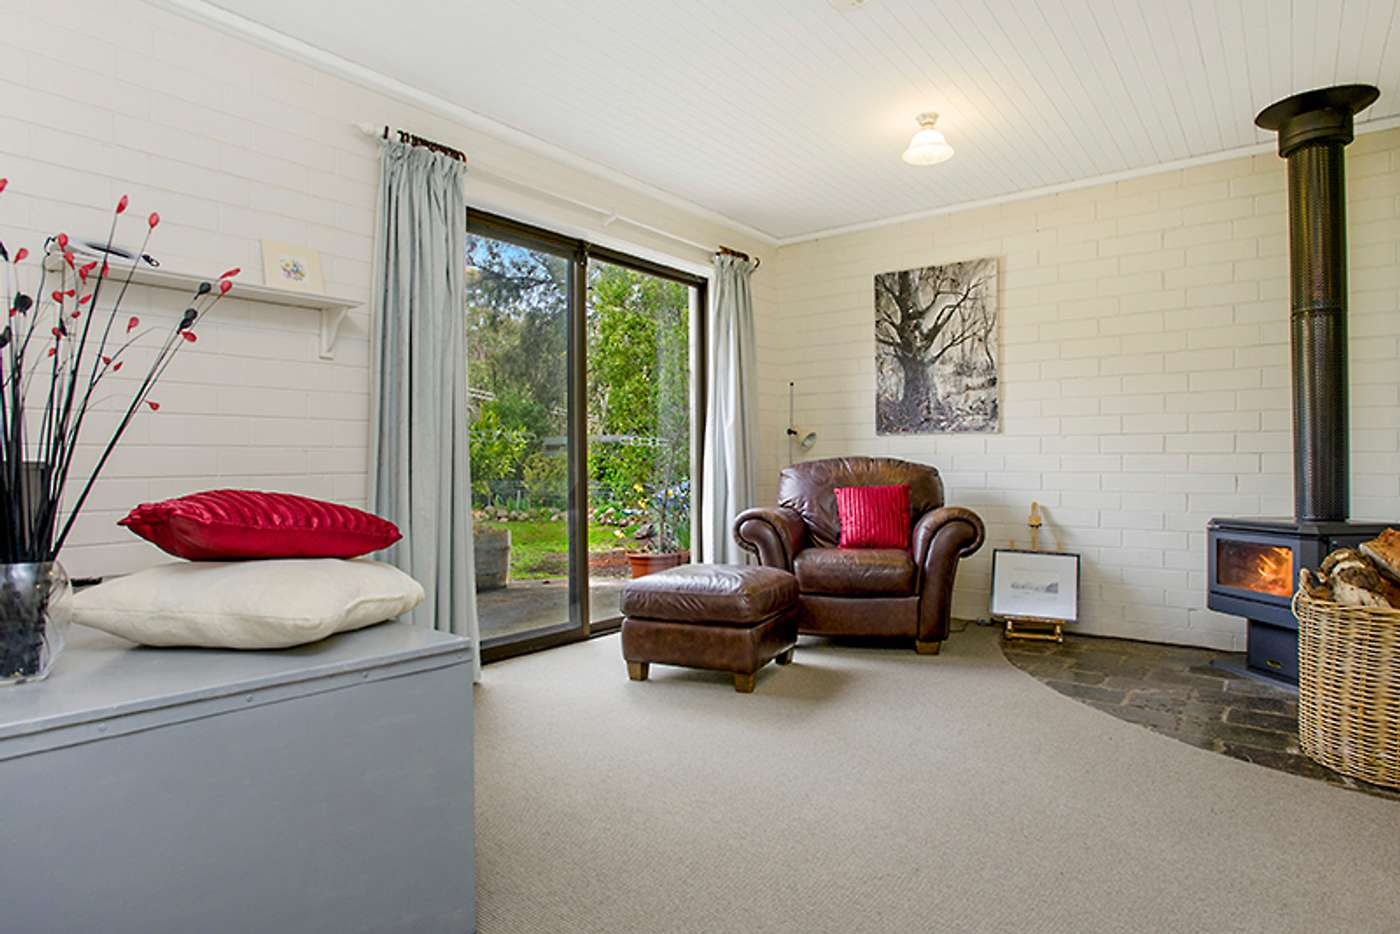 Sixth view of Homely house listing, 2 Centenary Avenue, Macedon VIC 3440